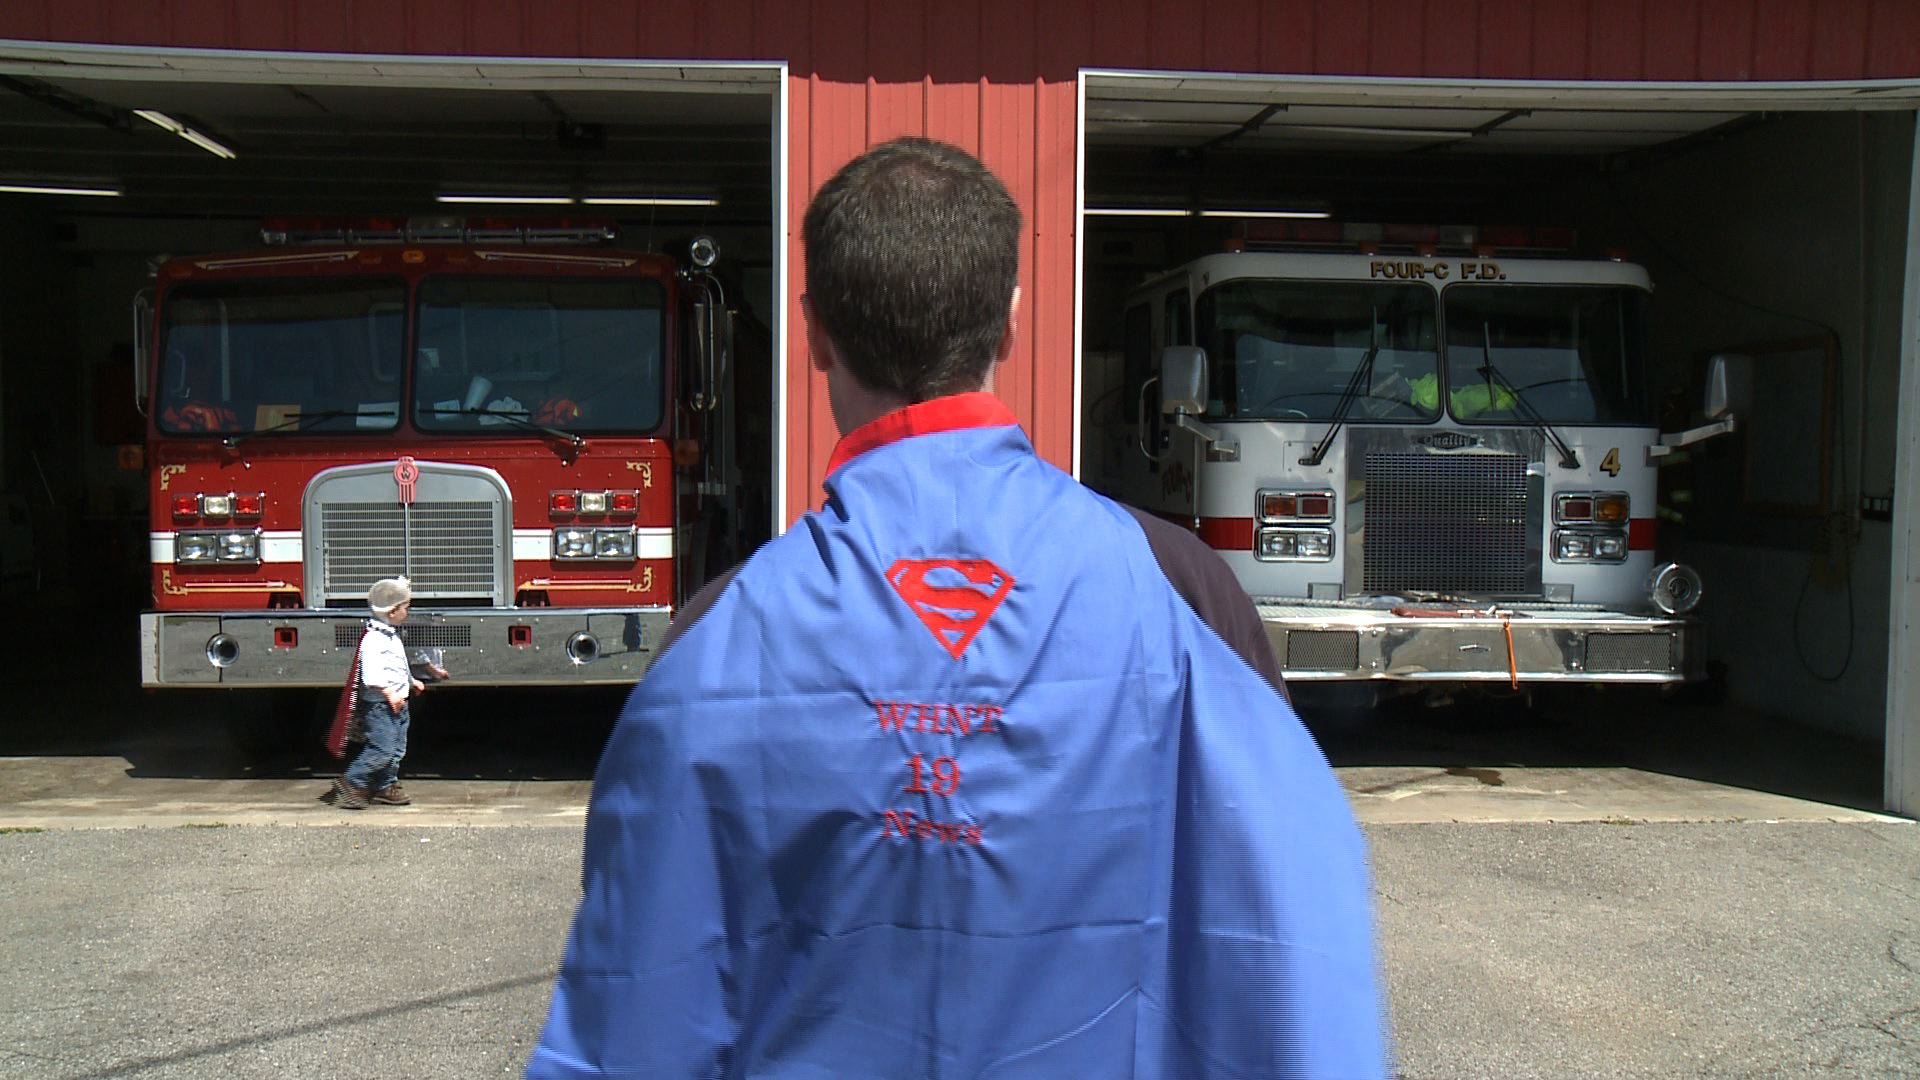 Robert Richardson in his Super WHNT News 19 cape. (Photo: Robert Richardson, WHNT News 19)